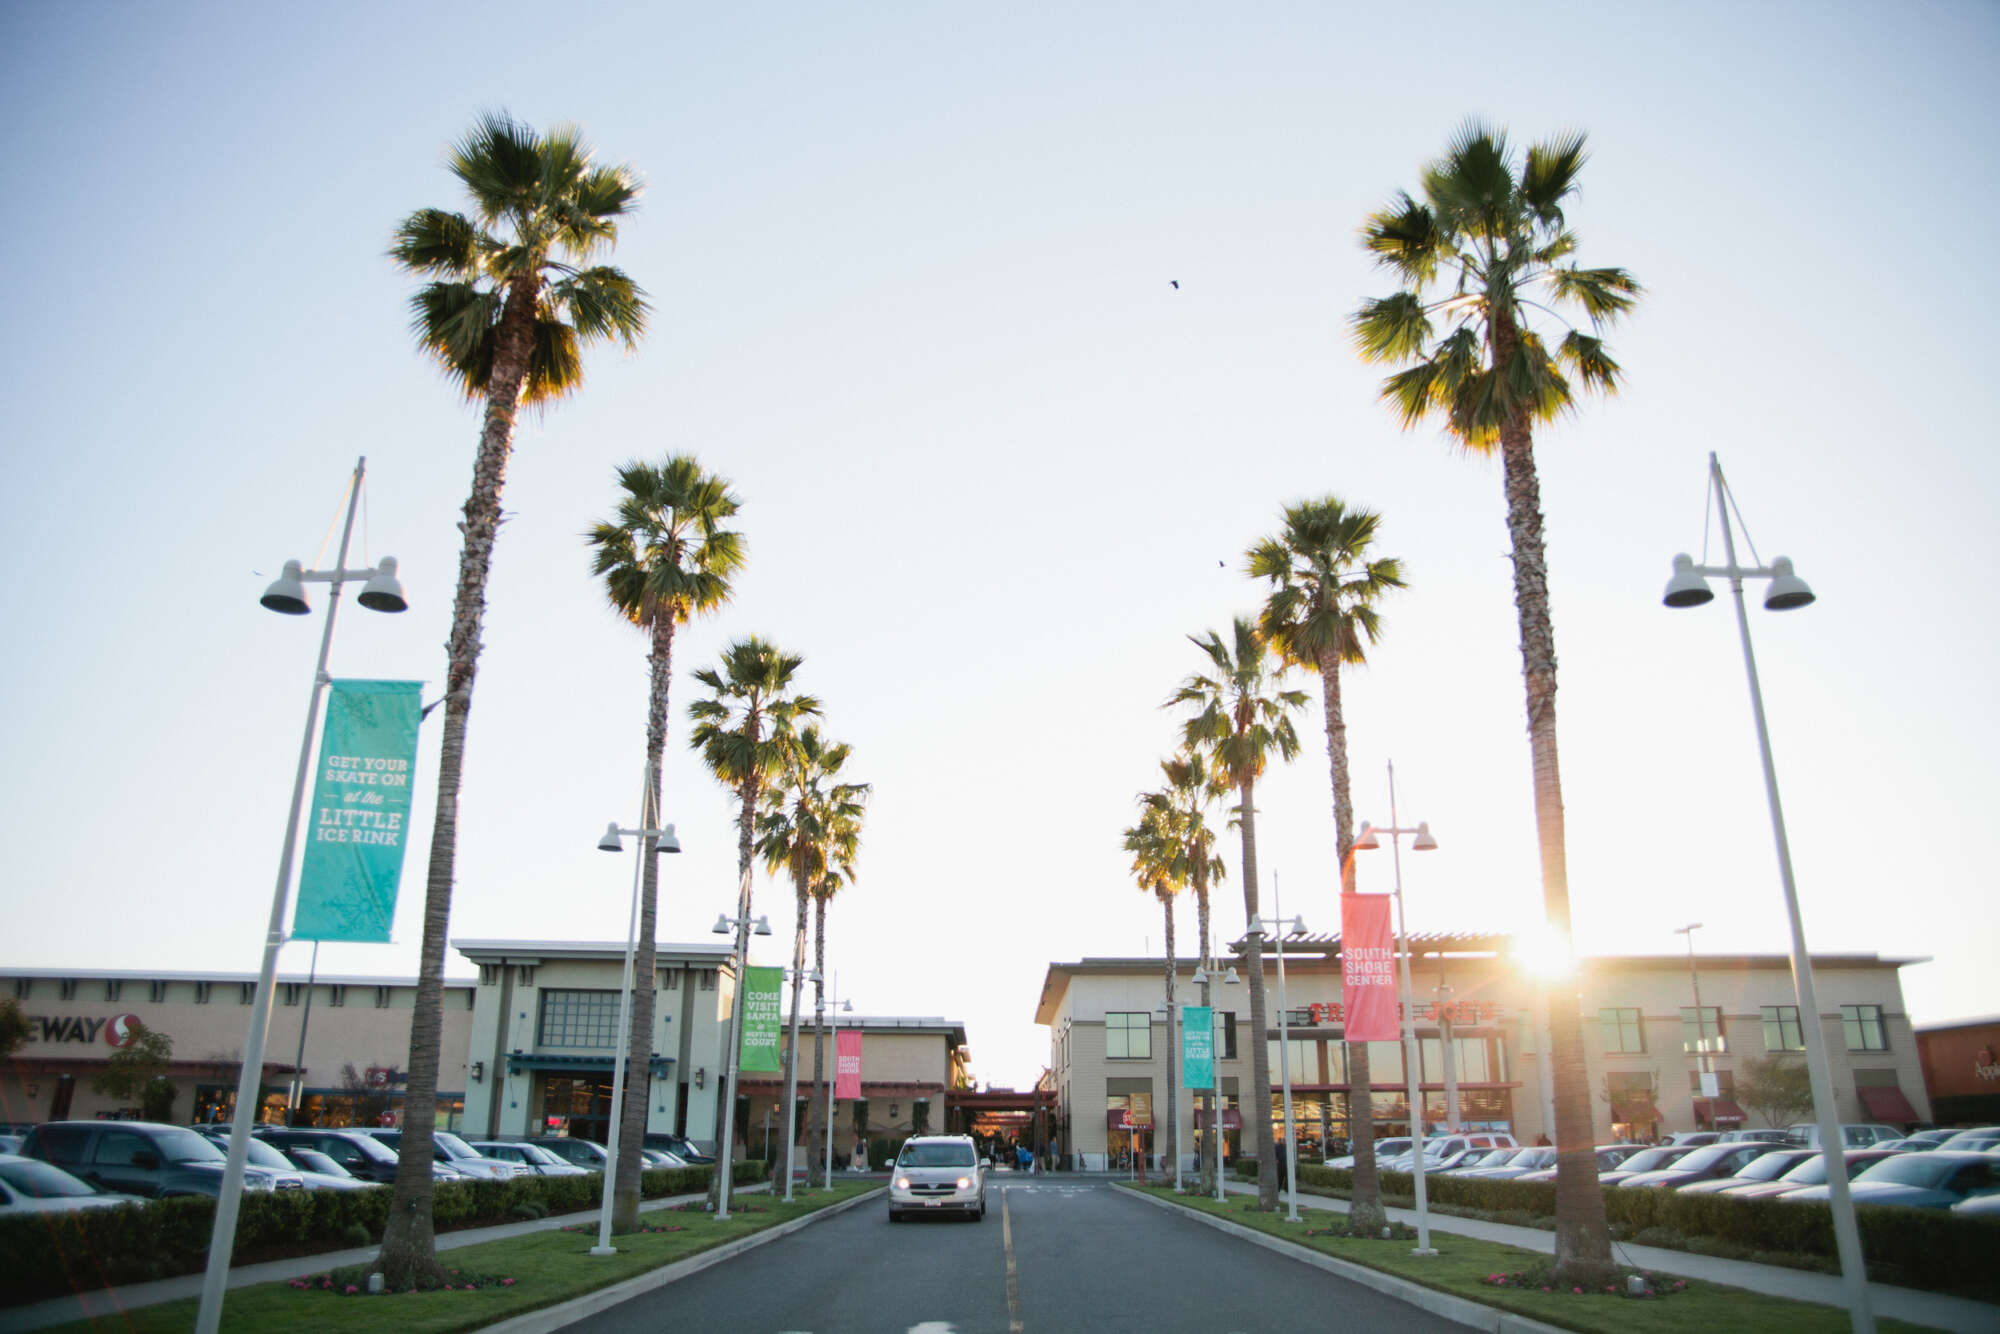 Alameda South Shore Center main entrance to parking lot lined with palm trees and parked cars